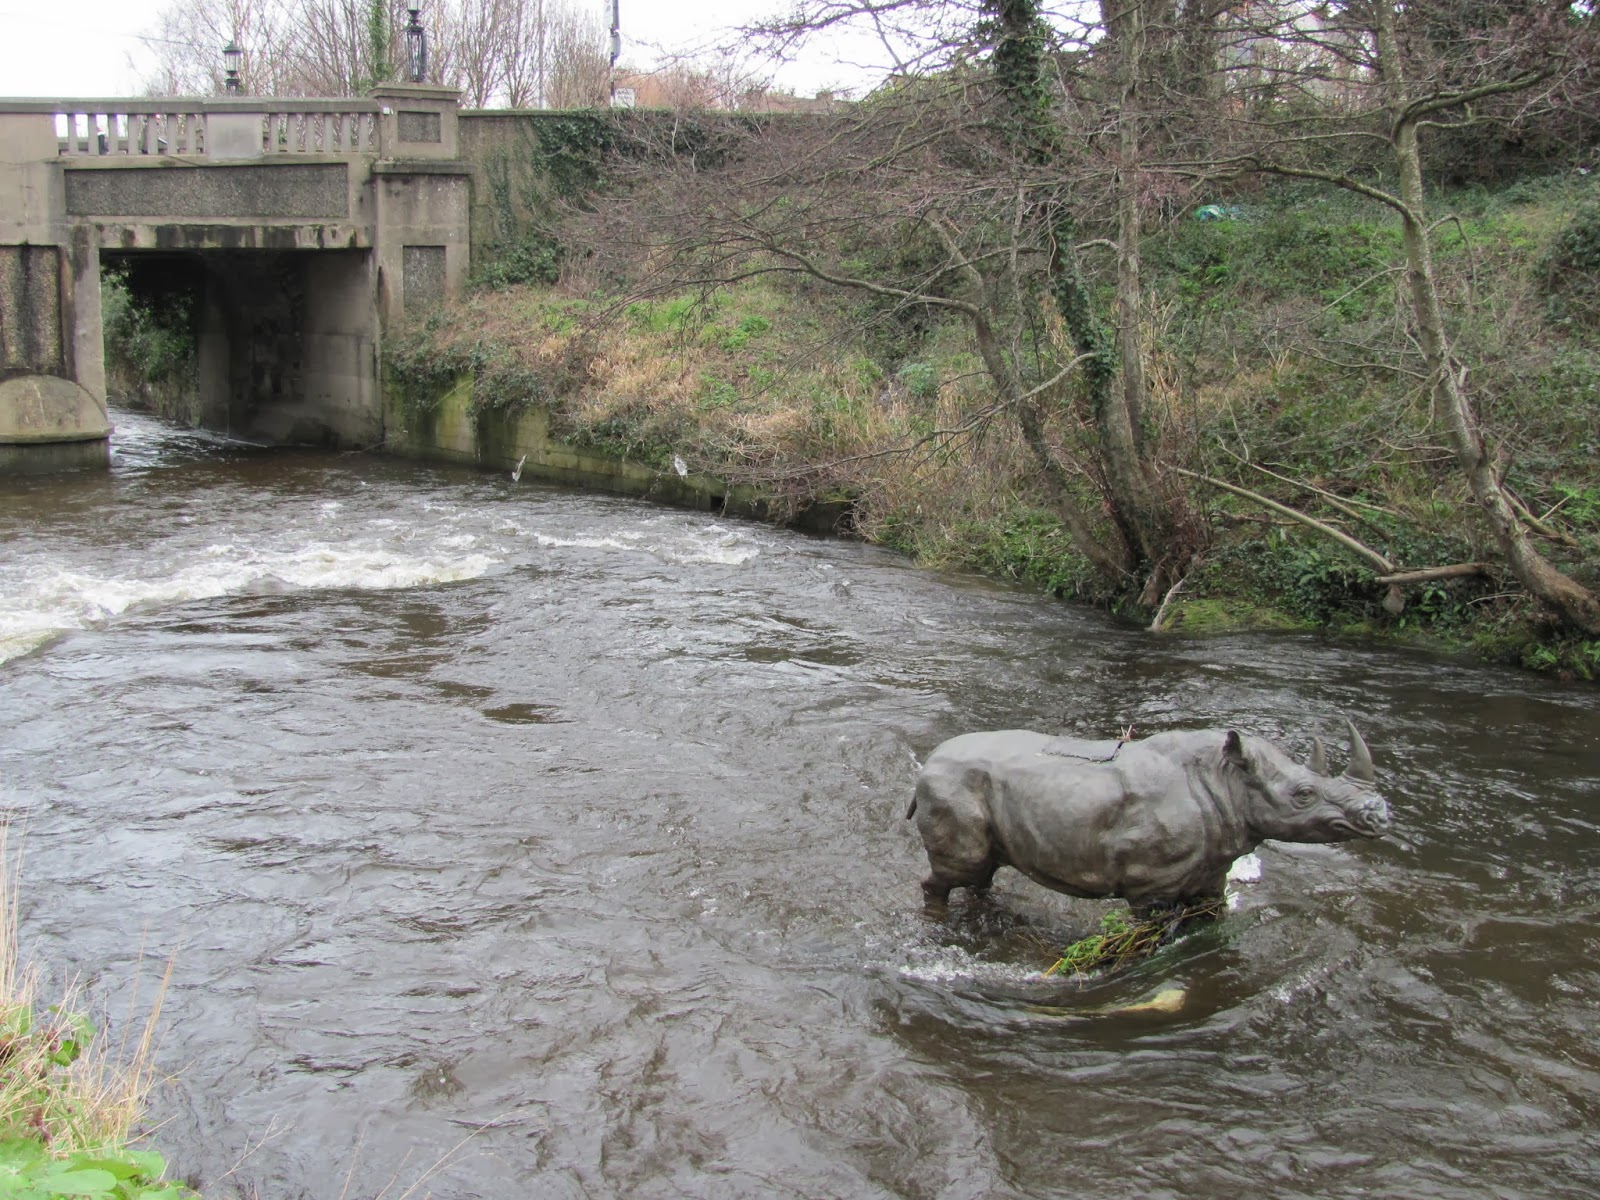 River Dodder Rhino with Classon's Bridge in Dublin